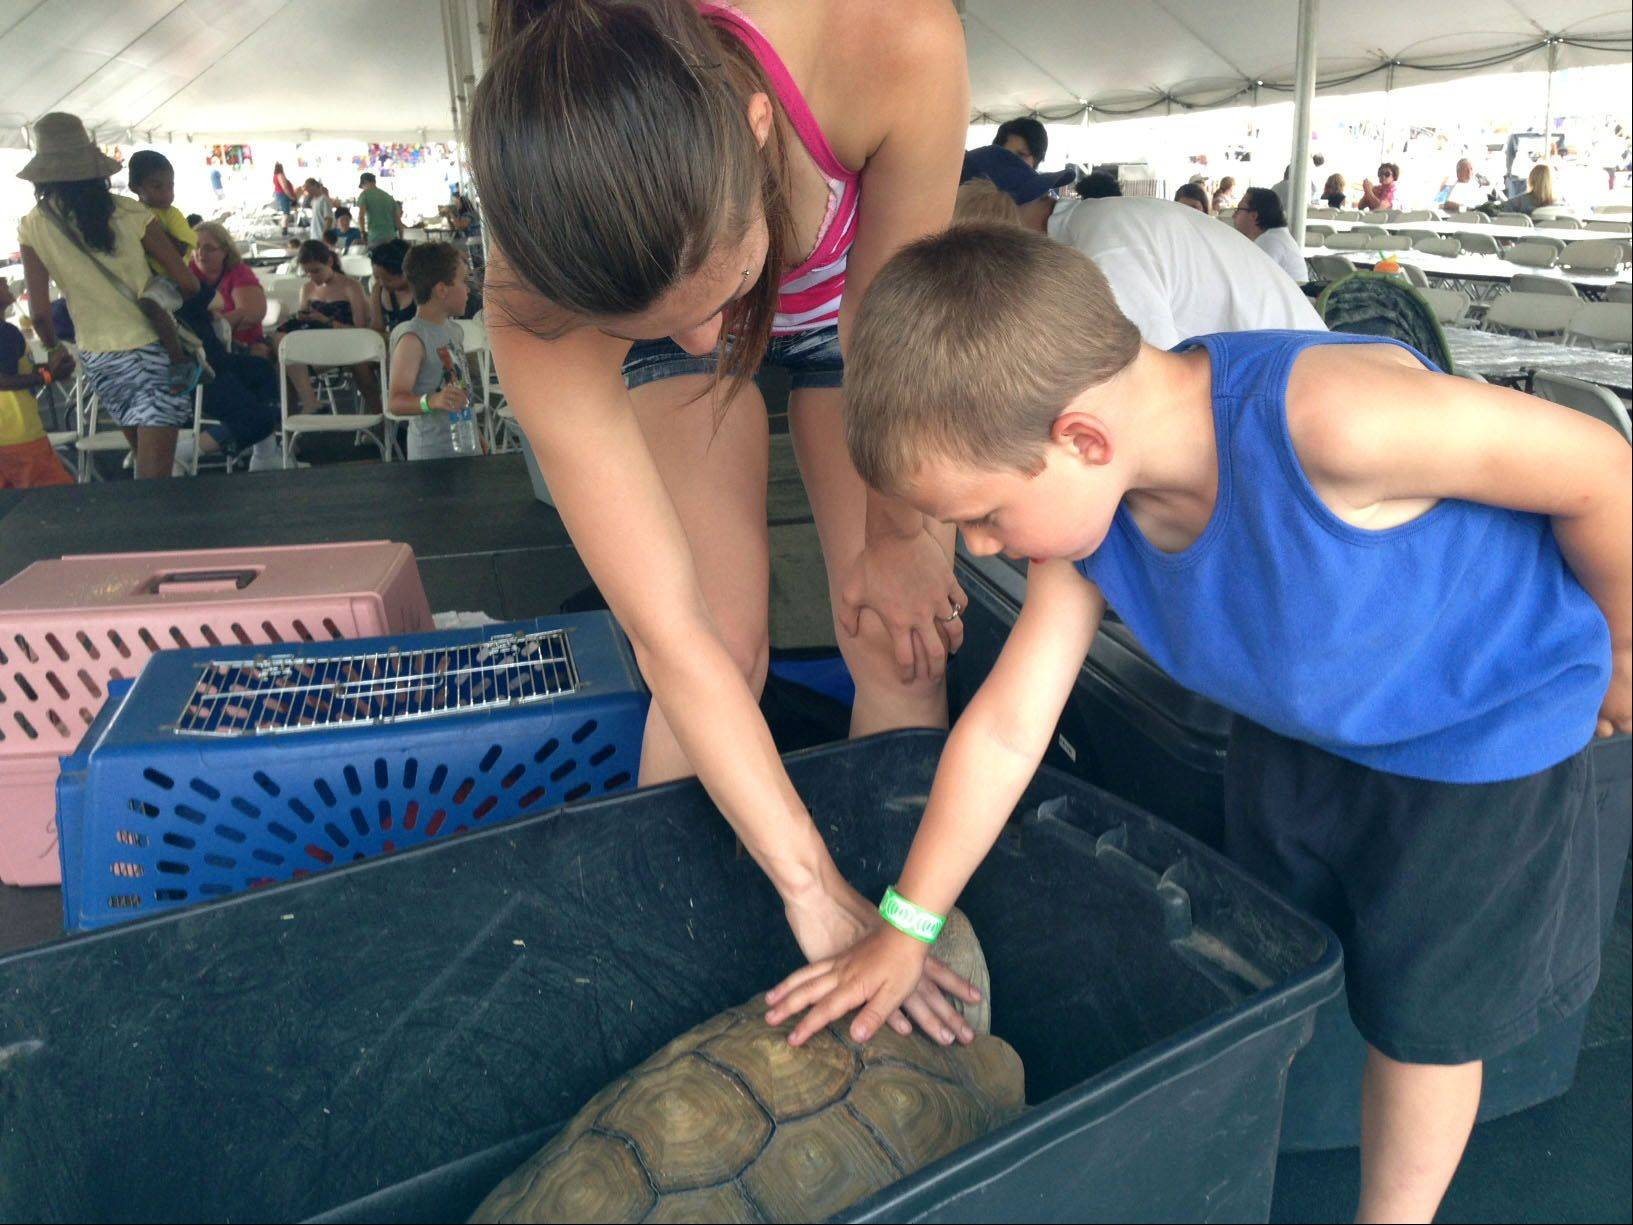 Matthew Pearson, 4, and his mother Tiffany Martin of Hoffman Estates get acquainted with a sulcata tortoise belonging to Animals for Awareness at Northwest Fourth-Fest Saturday at the Sears Centre Arena in Hoffman Estates.